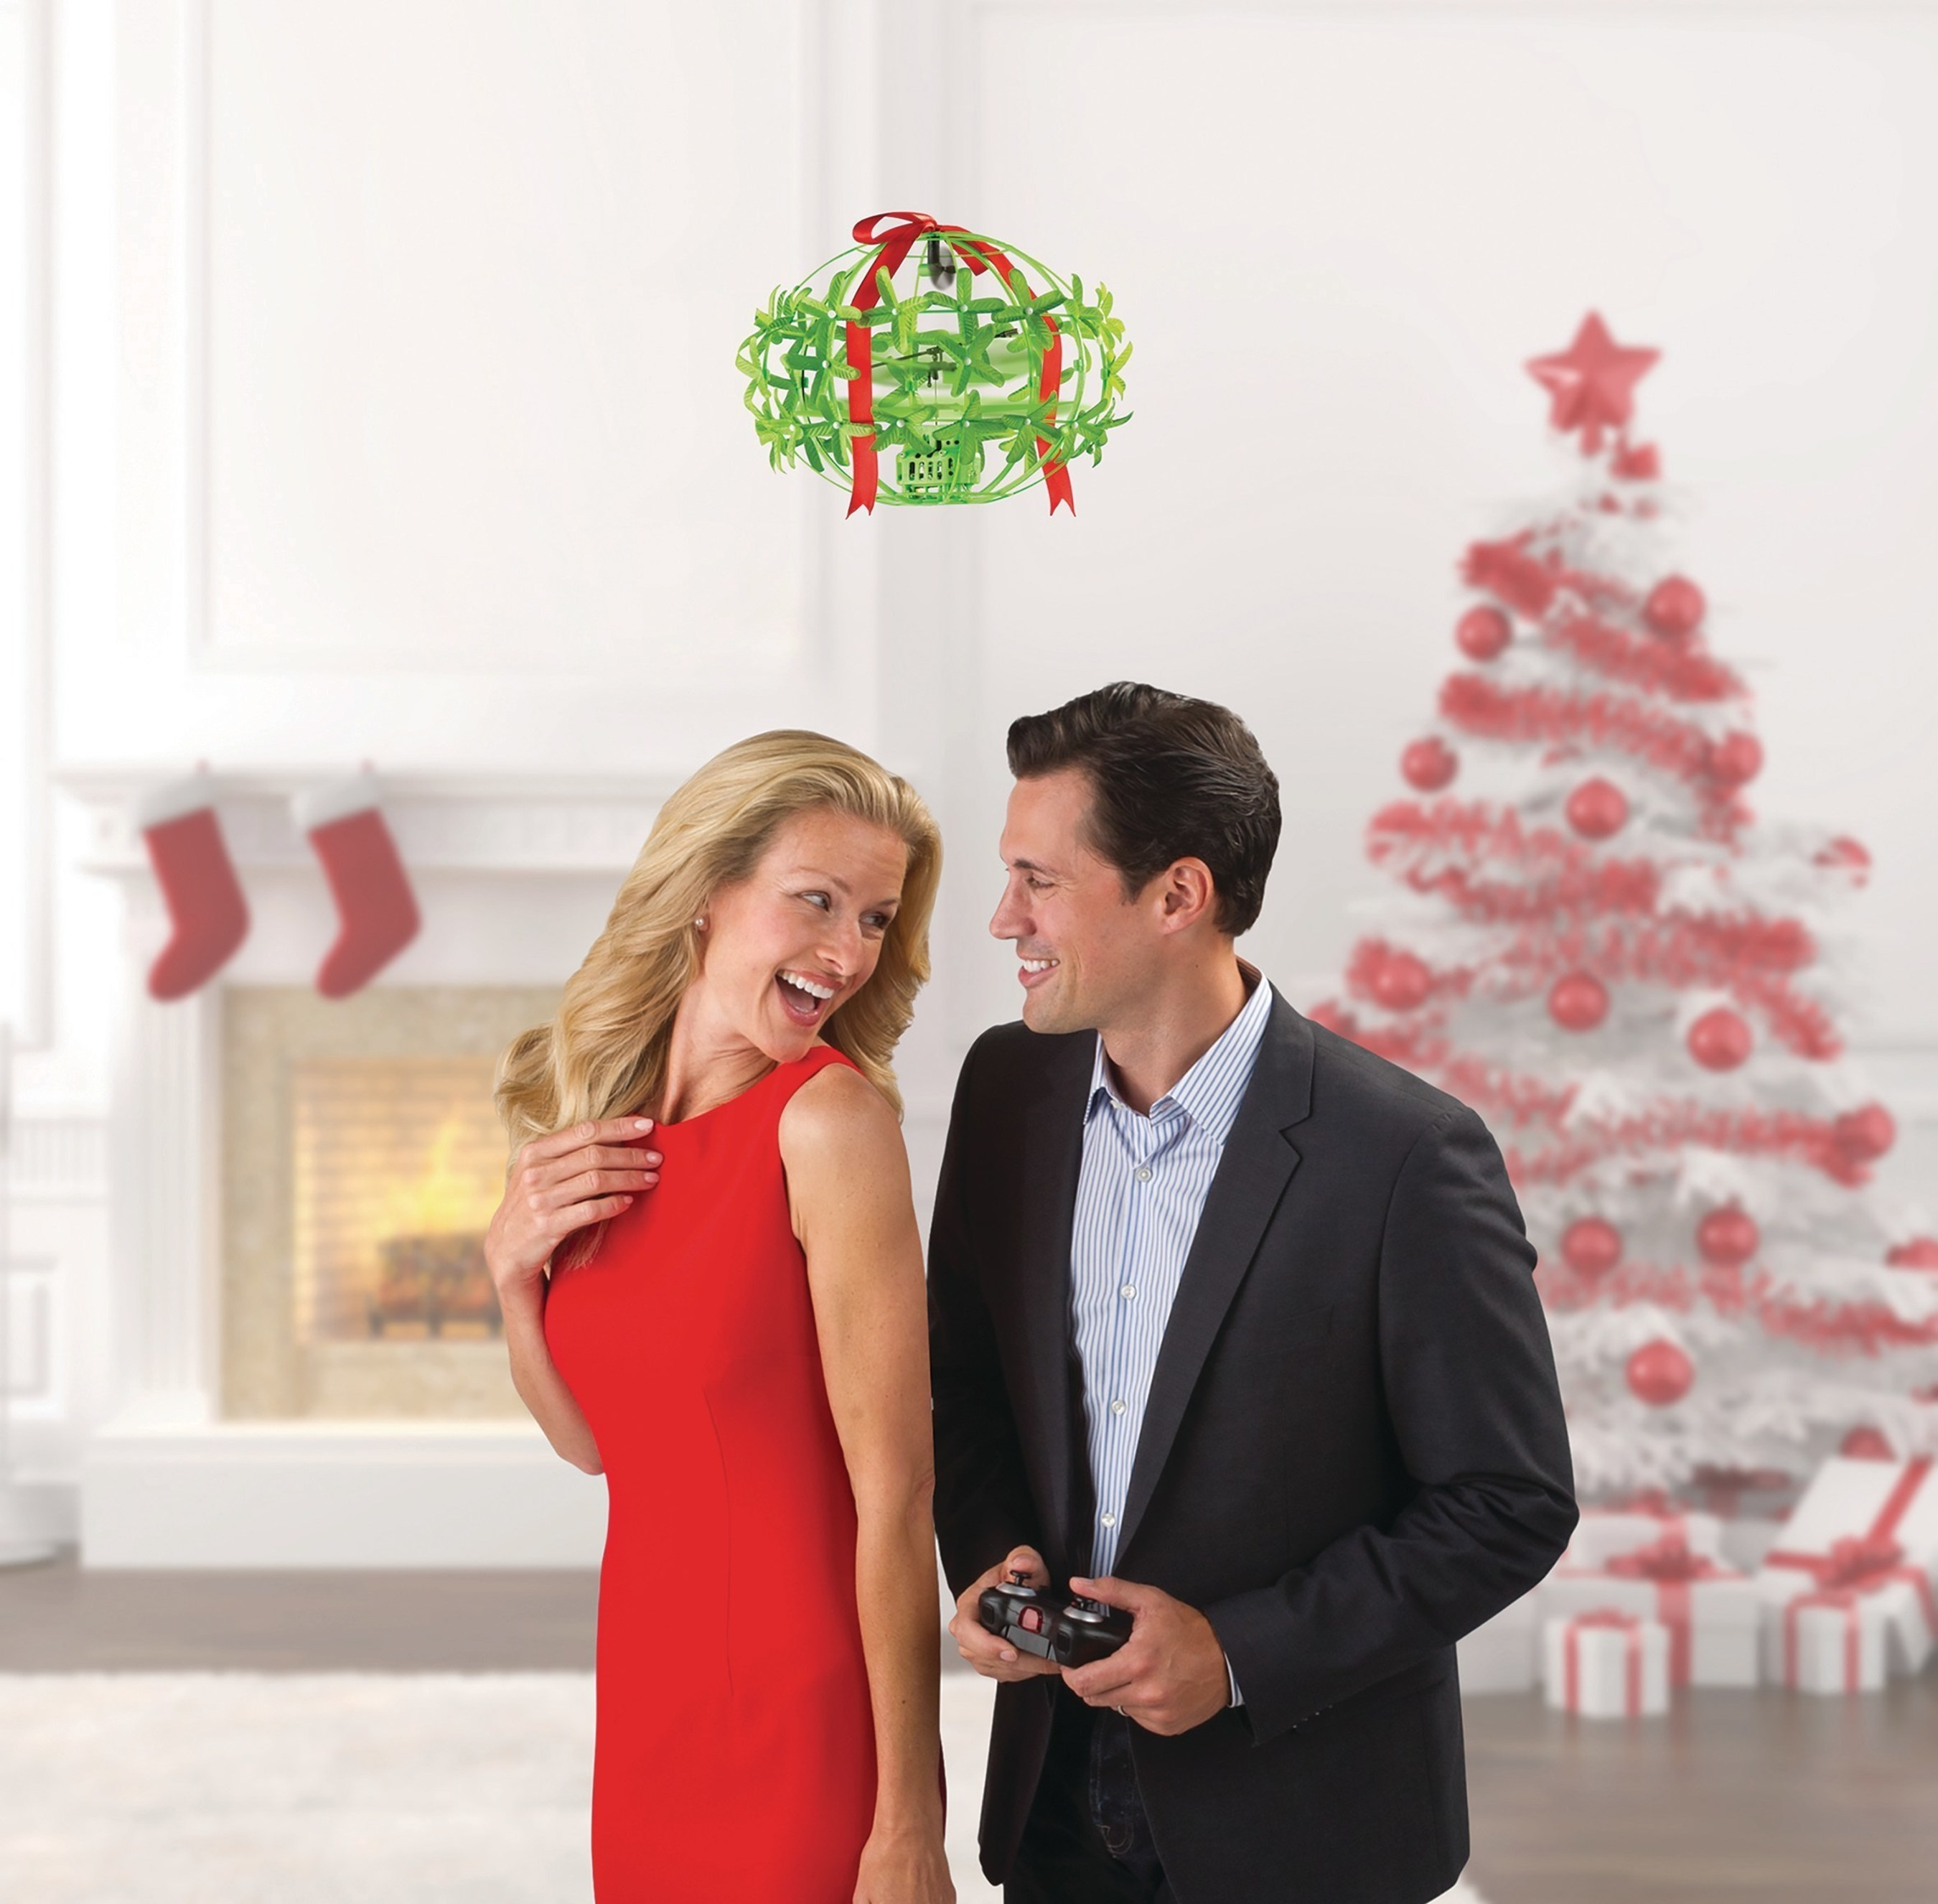 Hammacher Schlemmer Introduces The Mistletoe Drone